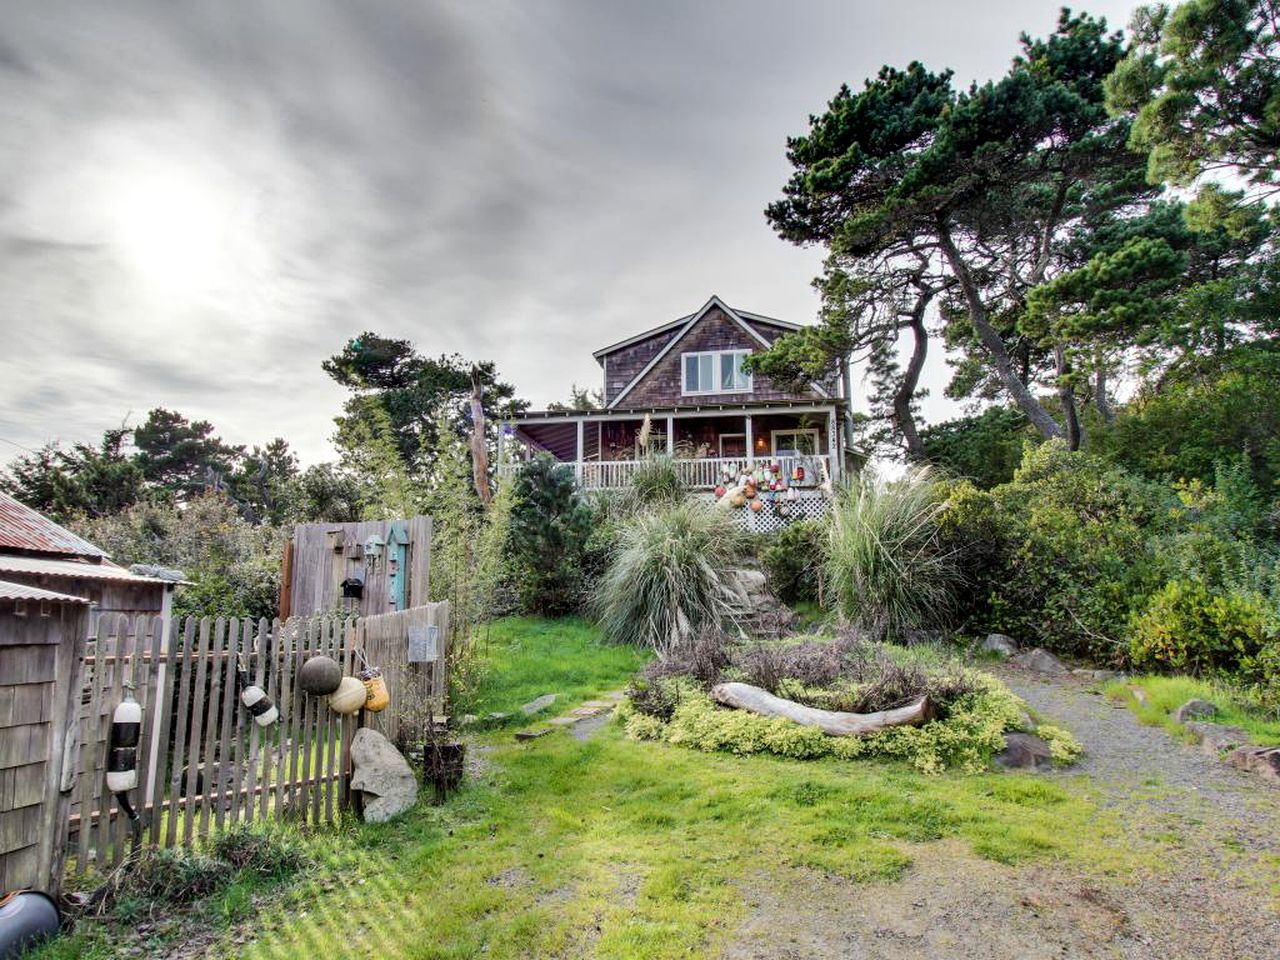 Beach Houses (Florence, Oregon, United States)